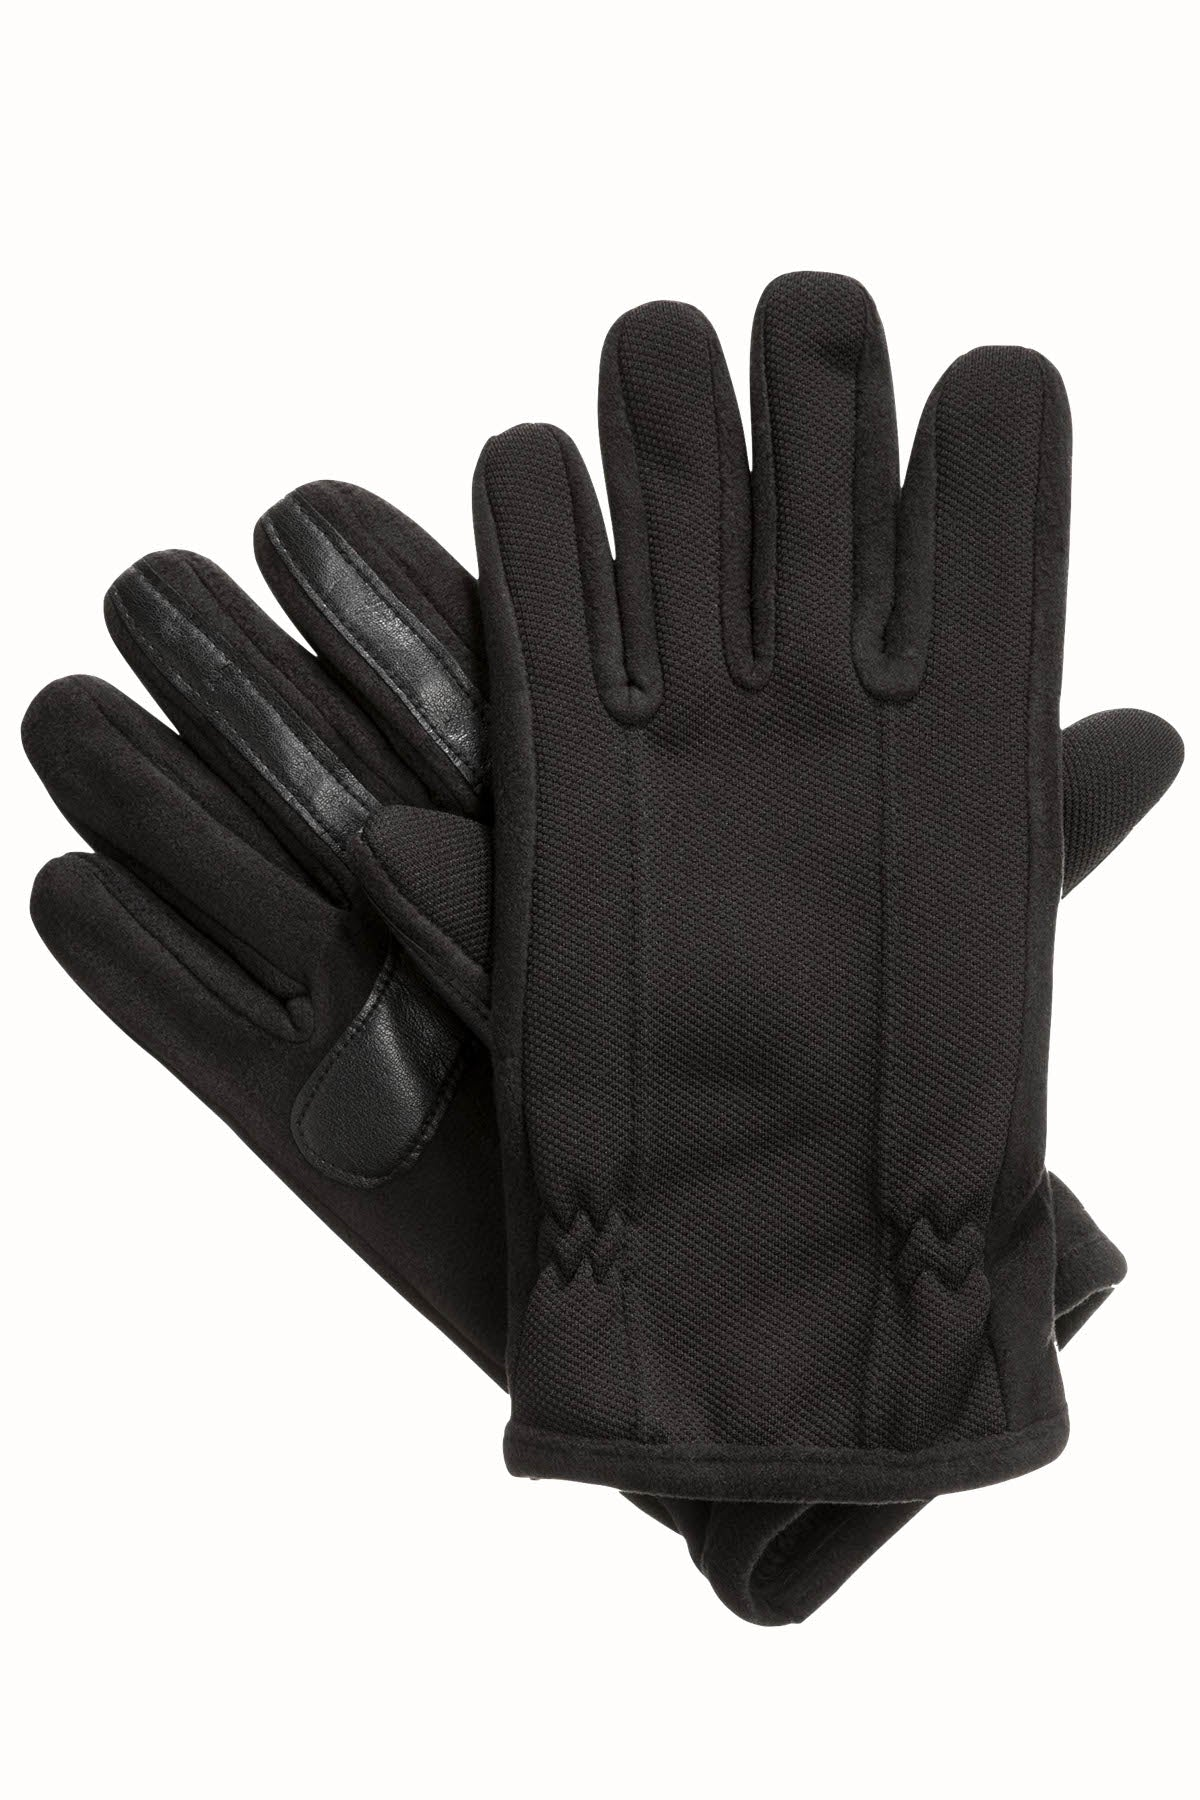 Isotoner Signature Black THERMAflex™ SmarTouch Tech Stretch Gloves